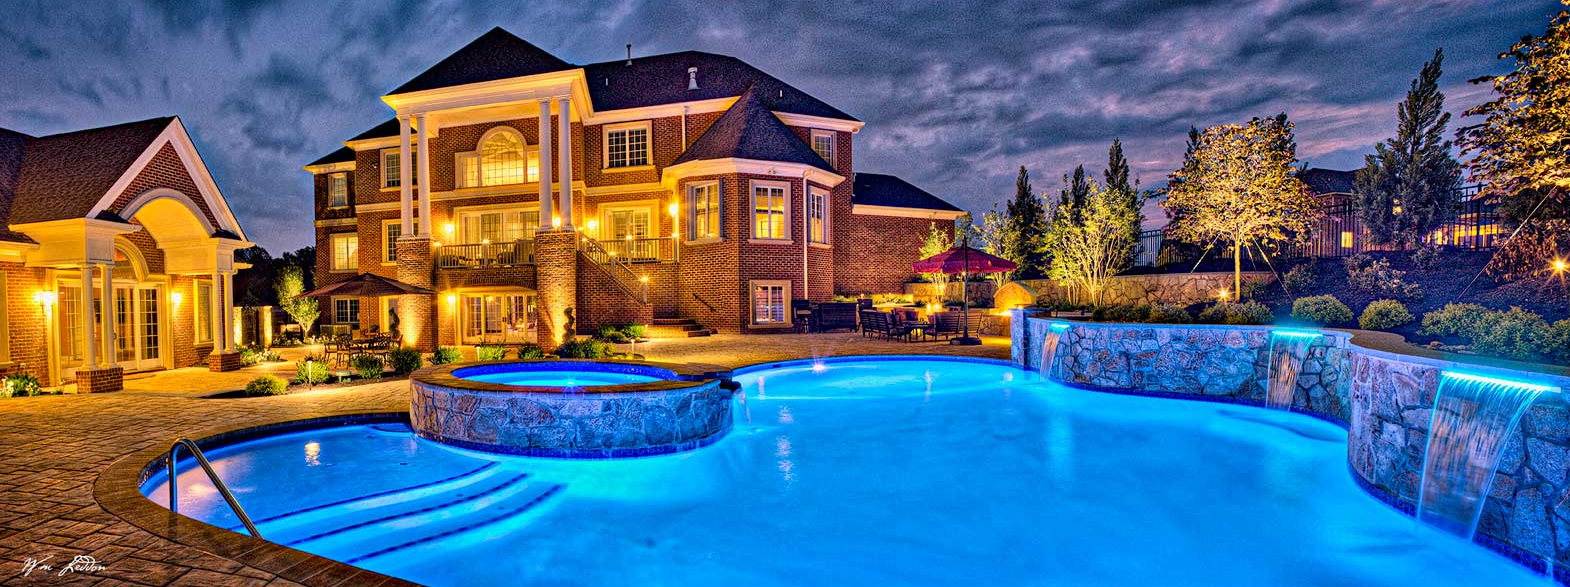 The best swimming pool builder in maryland rhine landscaping for Top pool builders